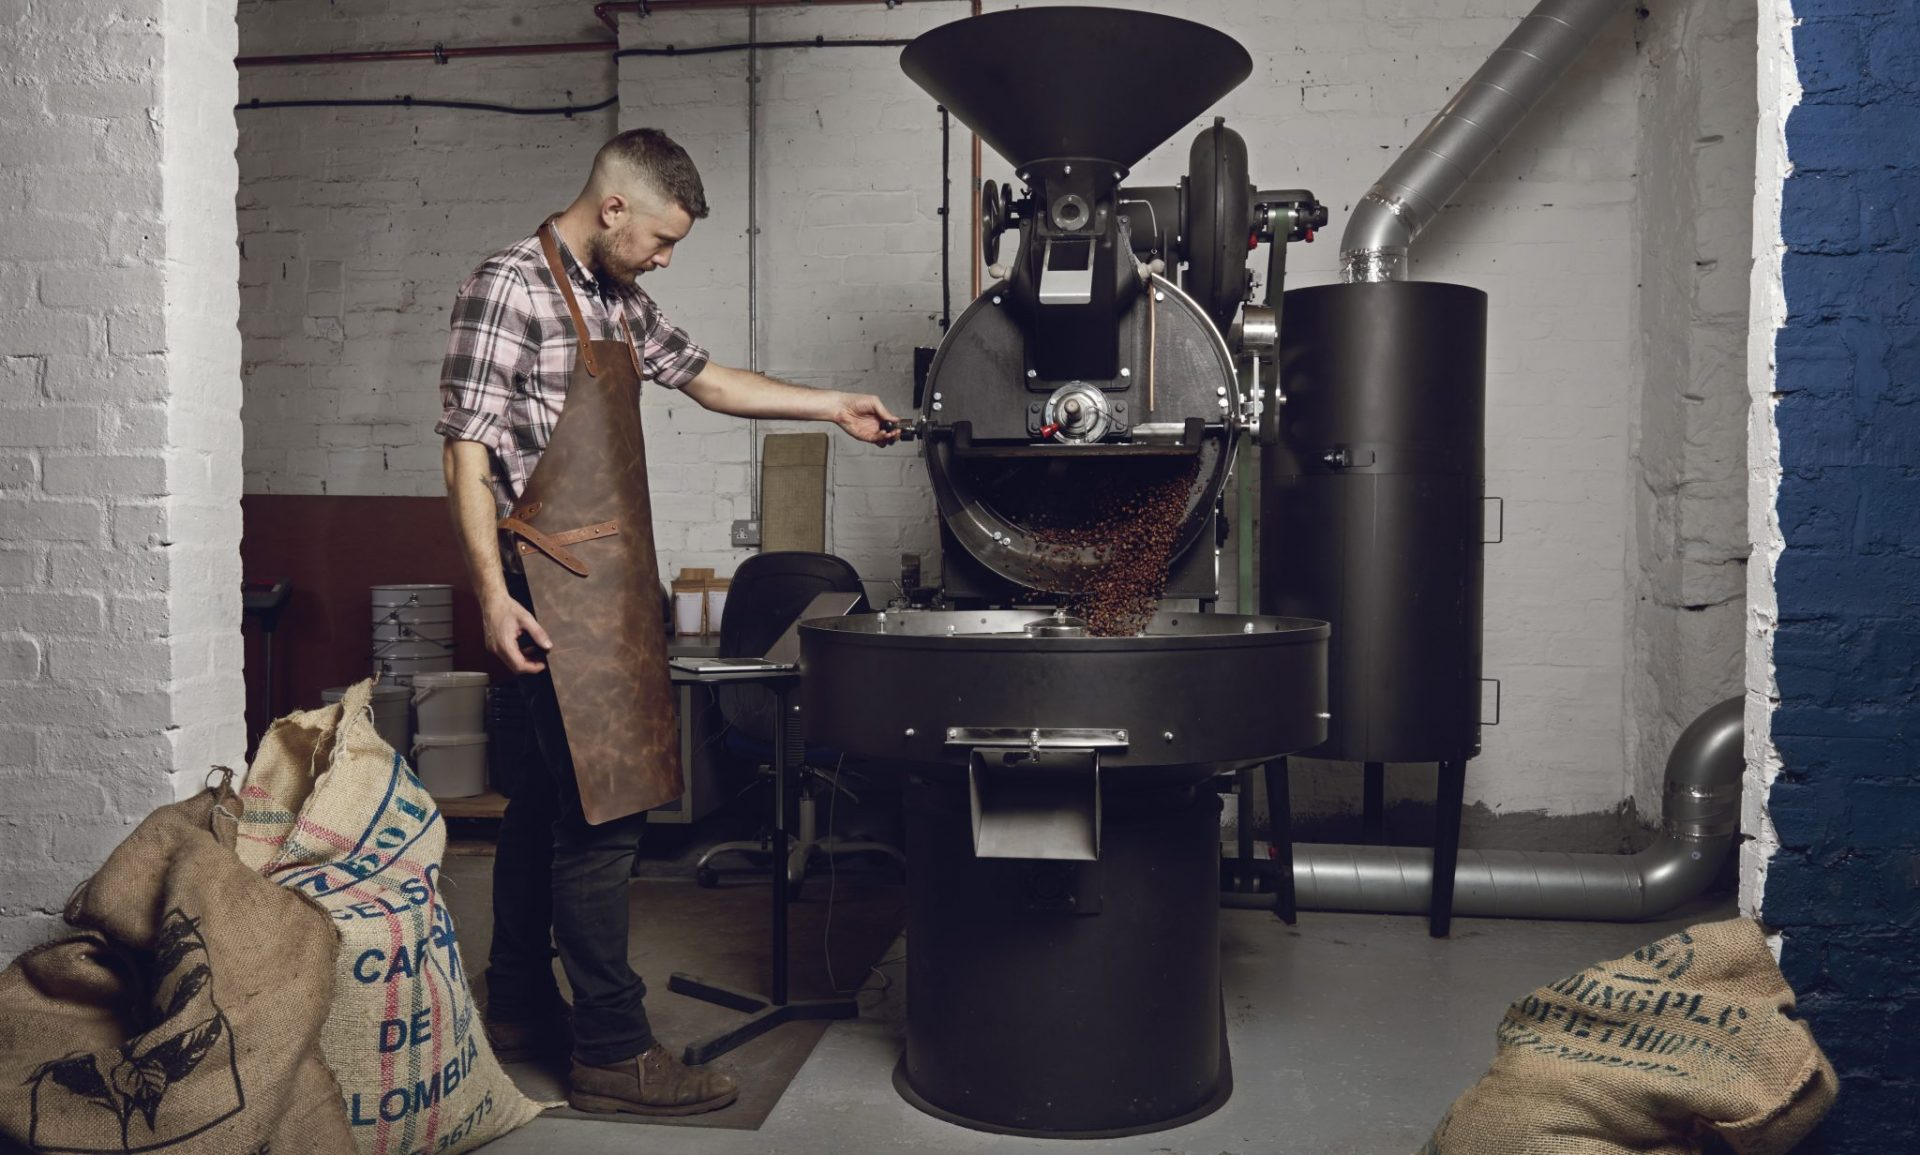 The Good Coffee Cartel - Roasting Coffee Beans